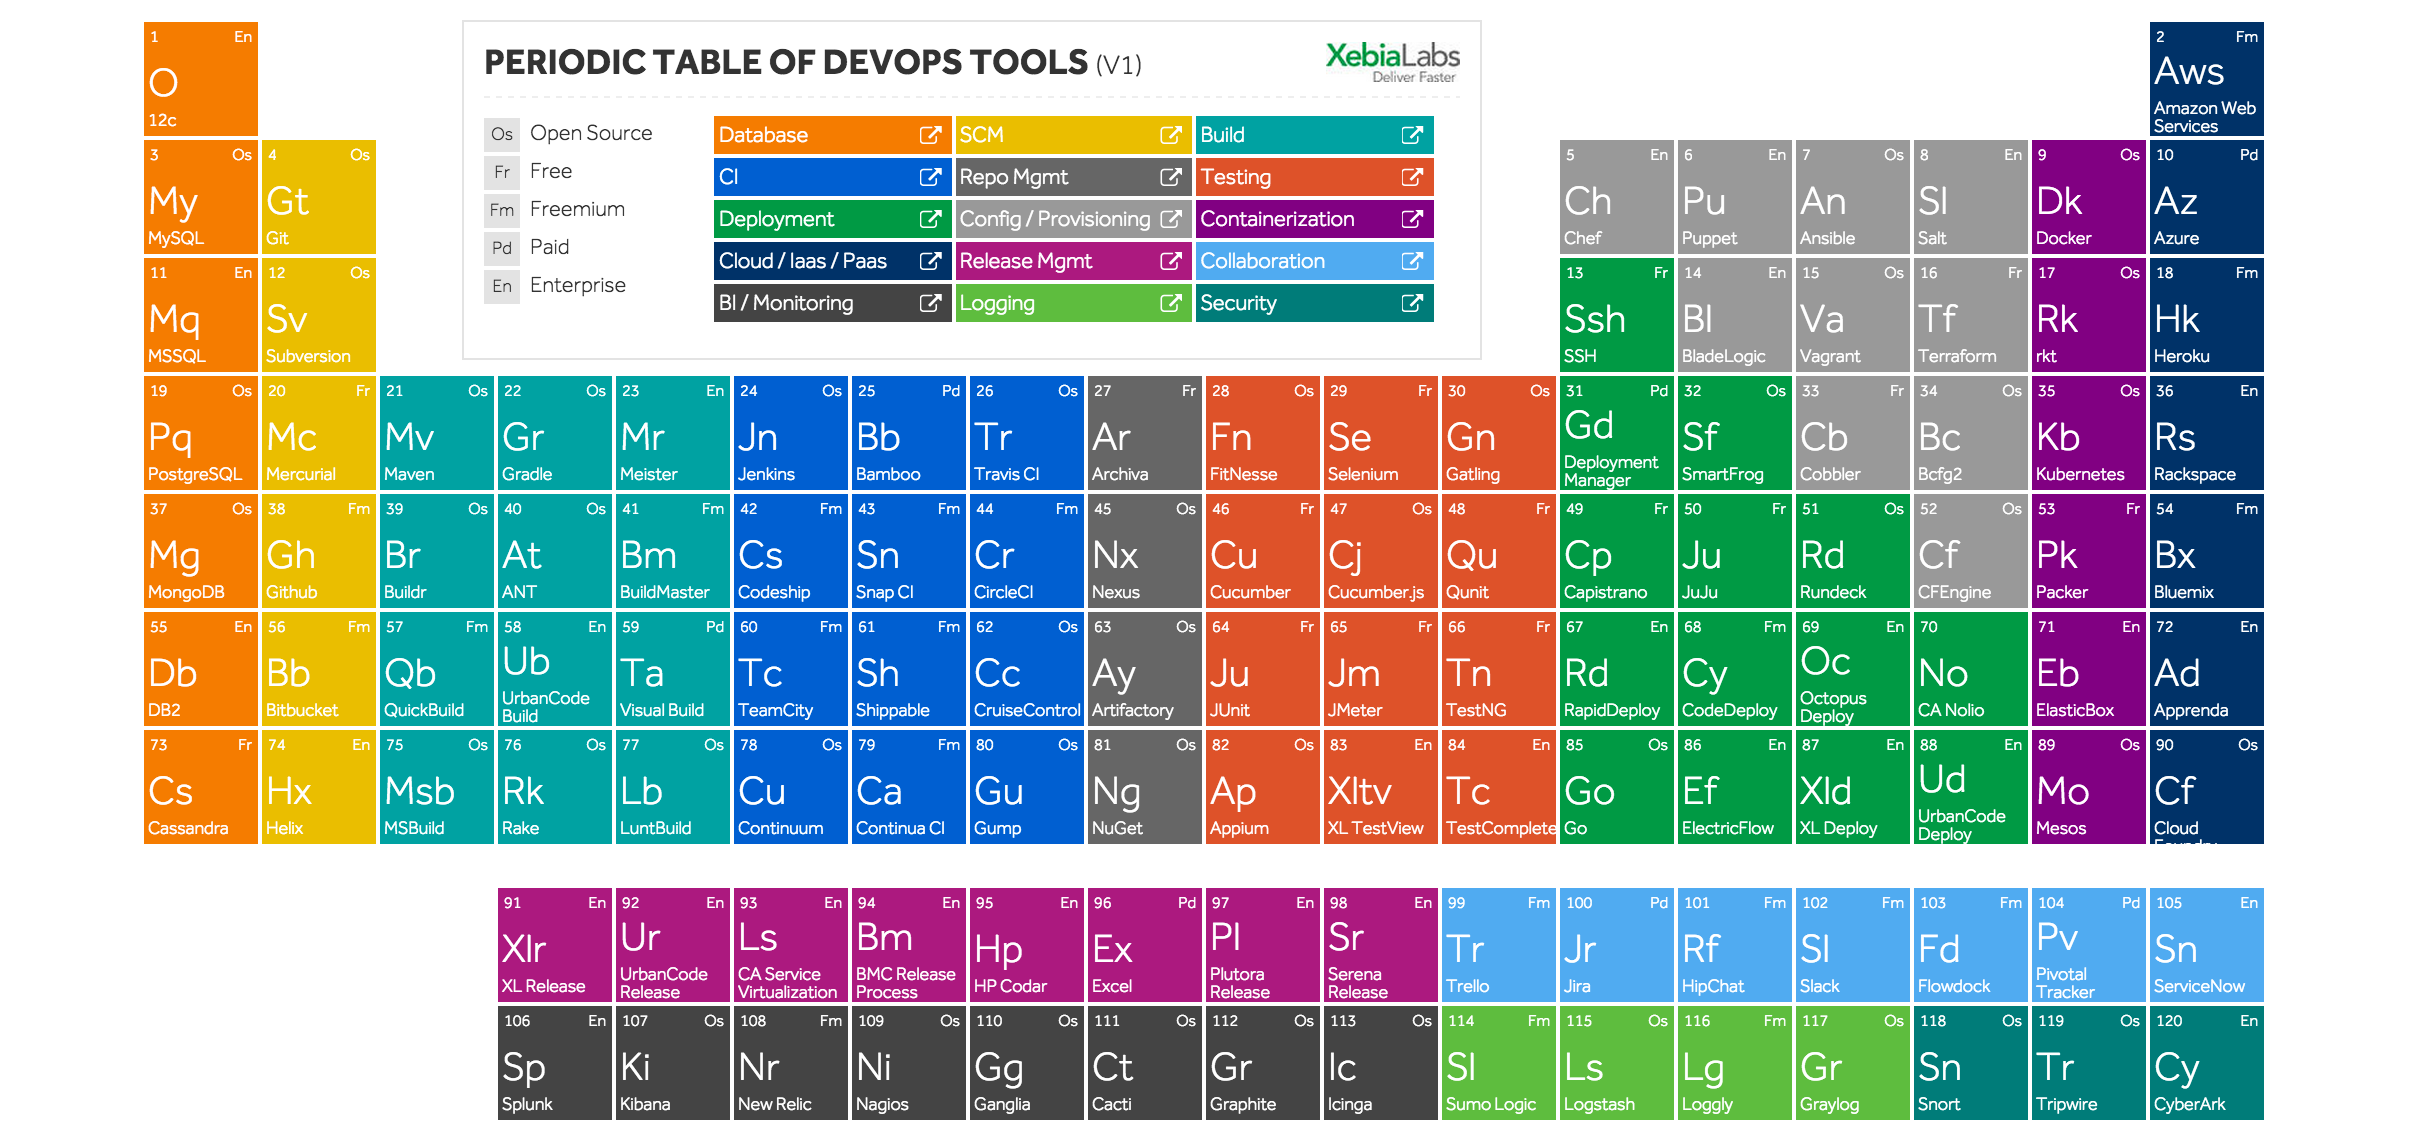 812531-xebialabs-periodic-table-of-devops